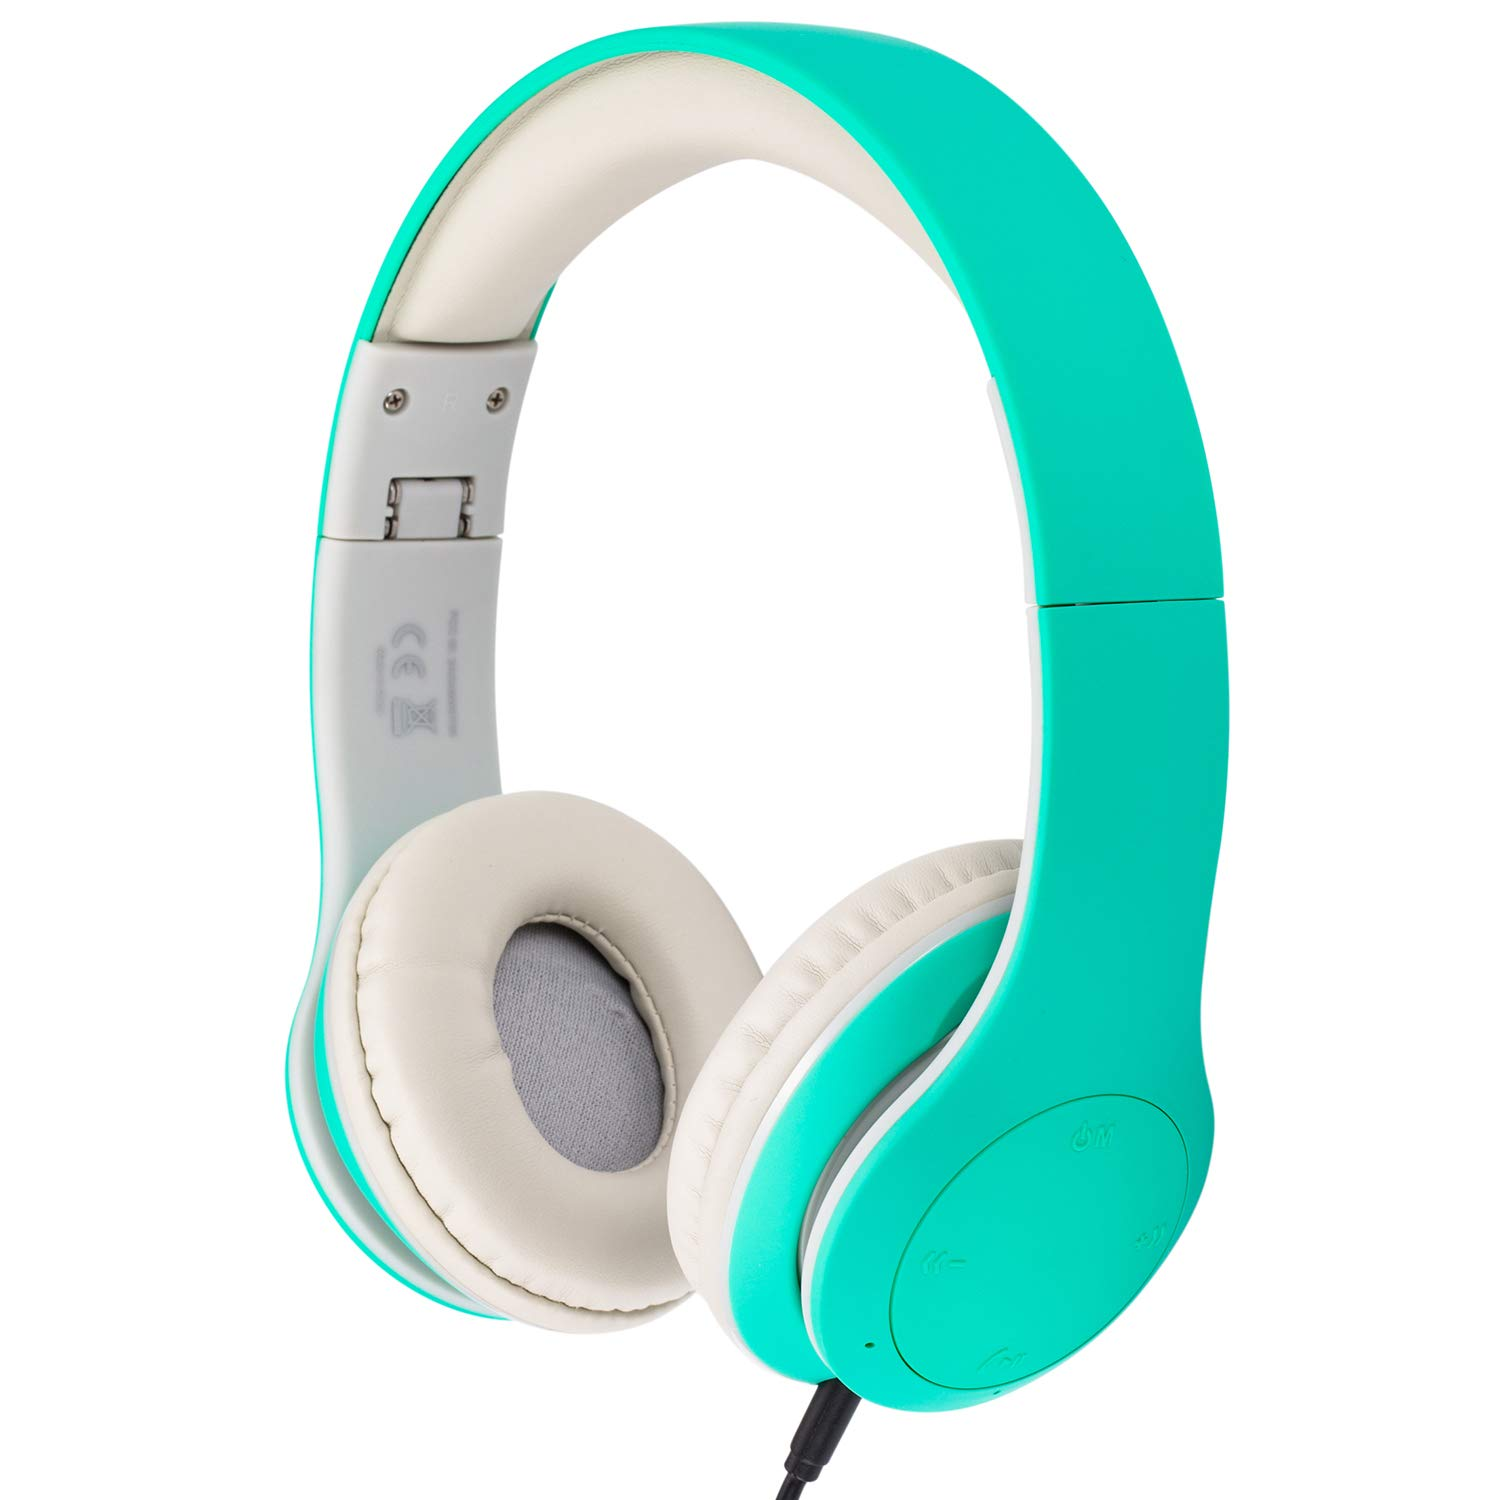 Auriculares Snug Play Bt Niños Bluetooth (aqua)